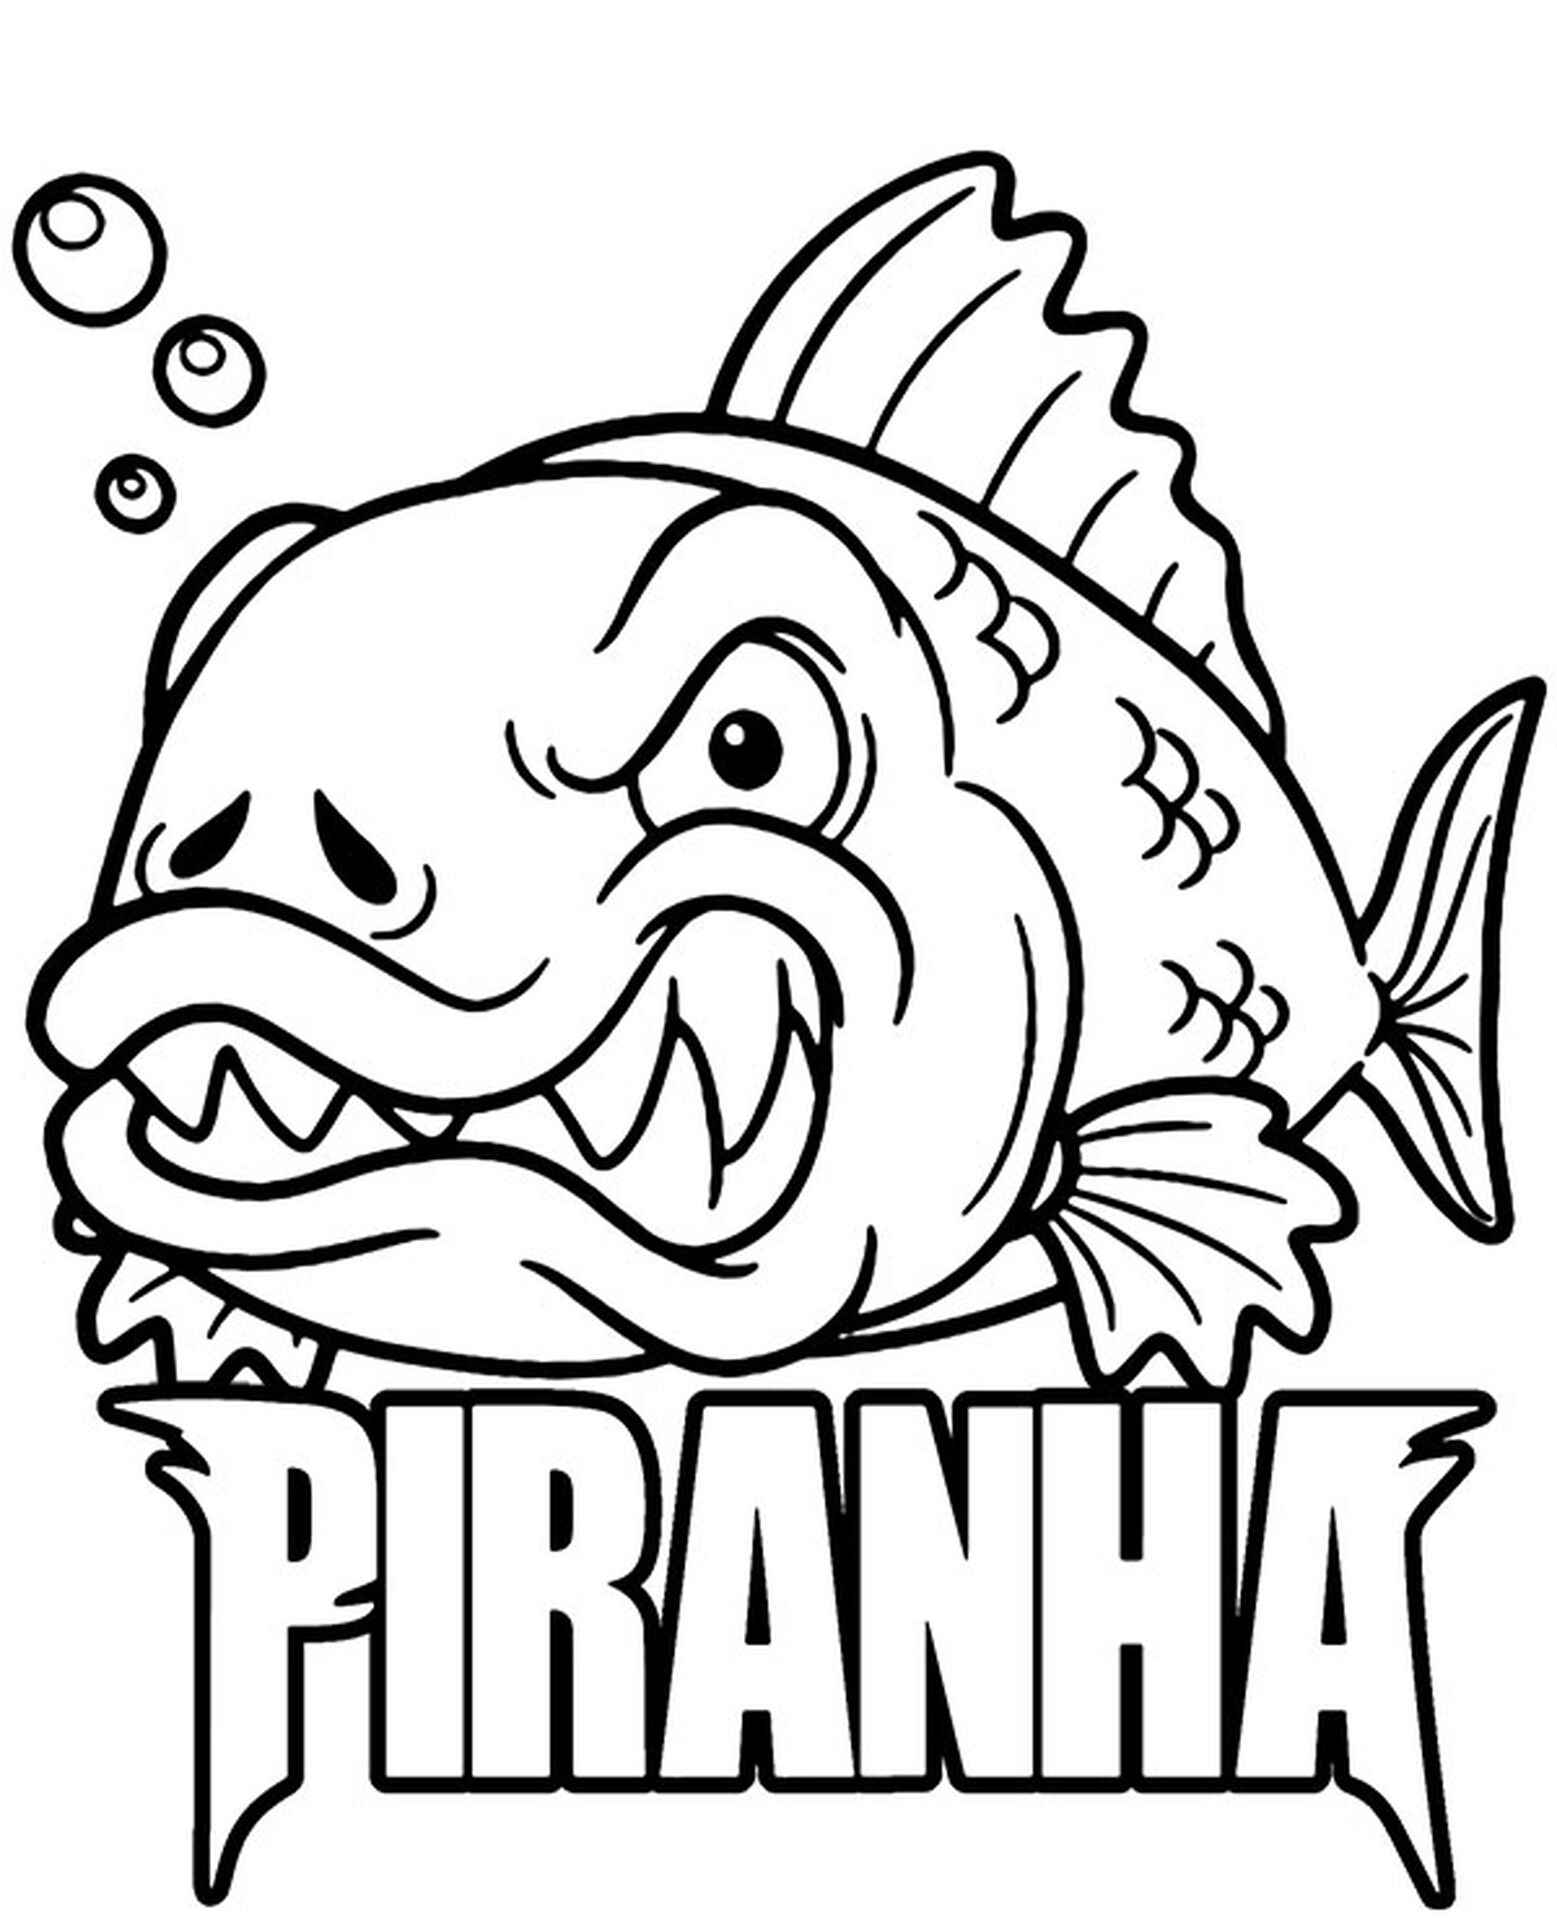 Logo Piranha Coloring Pages